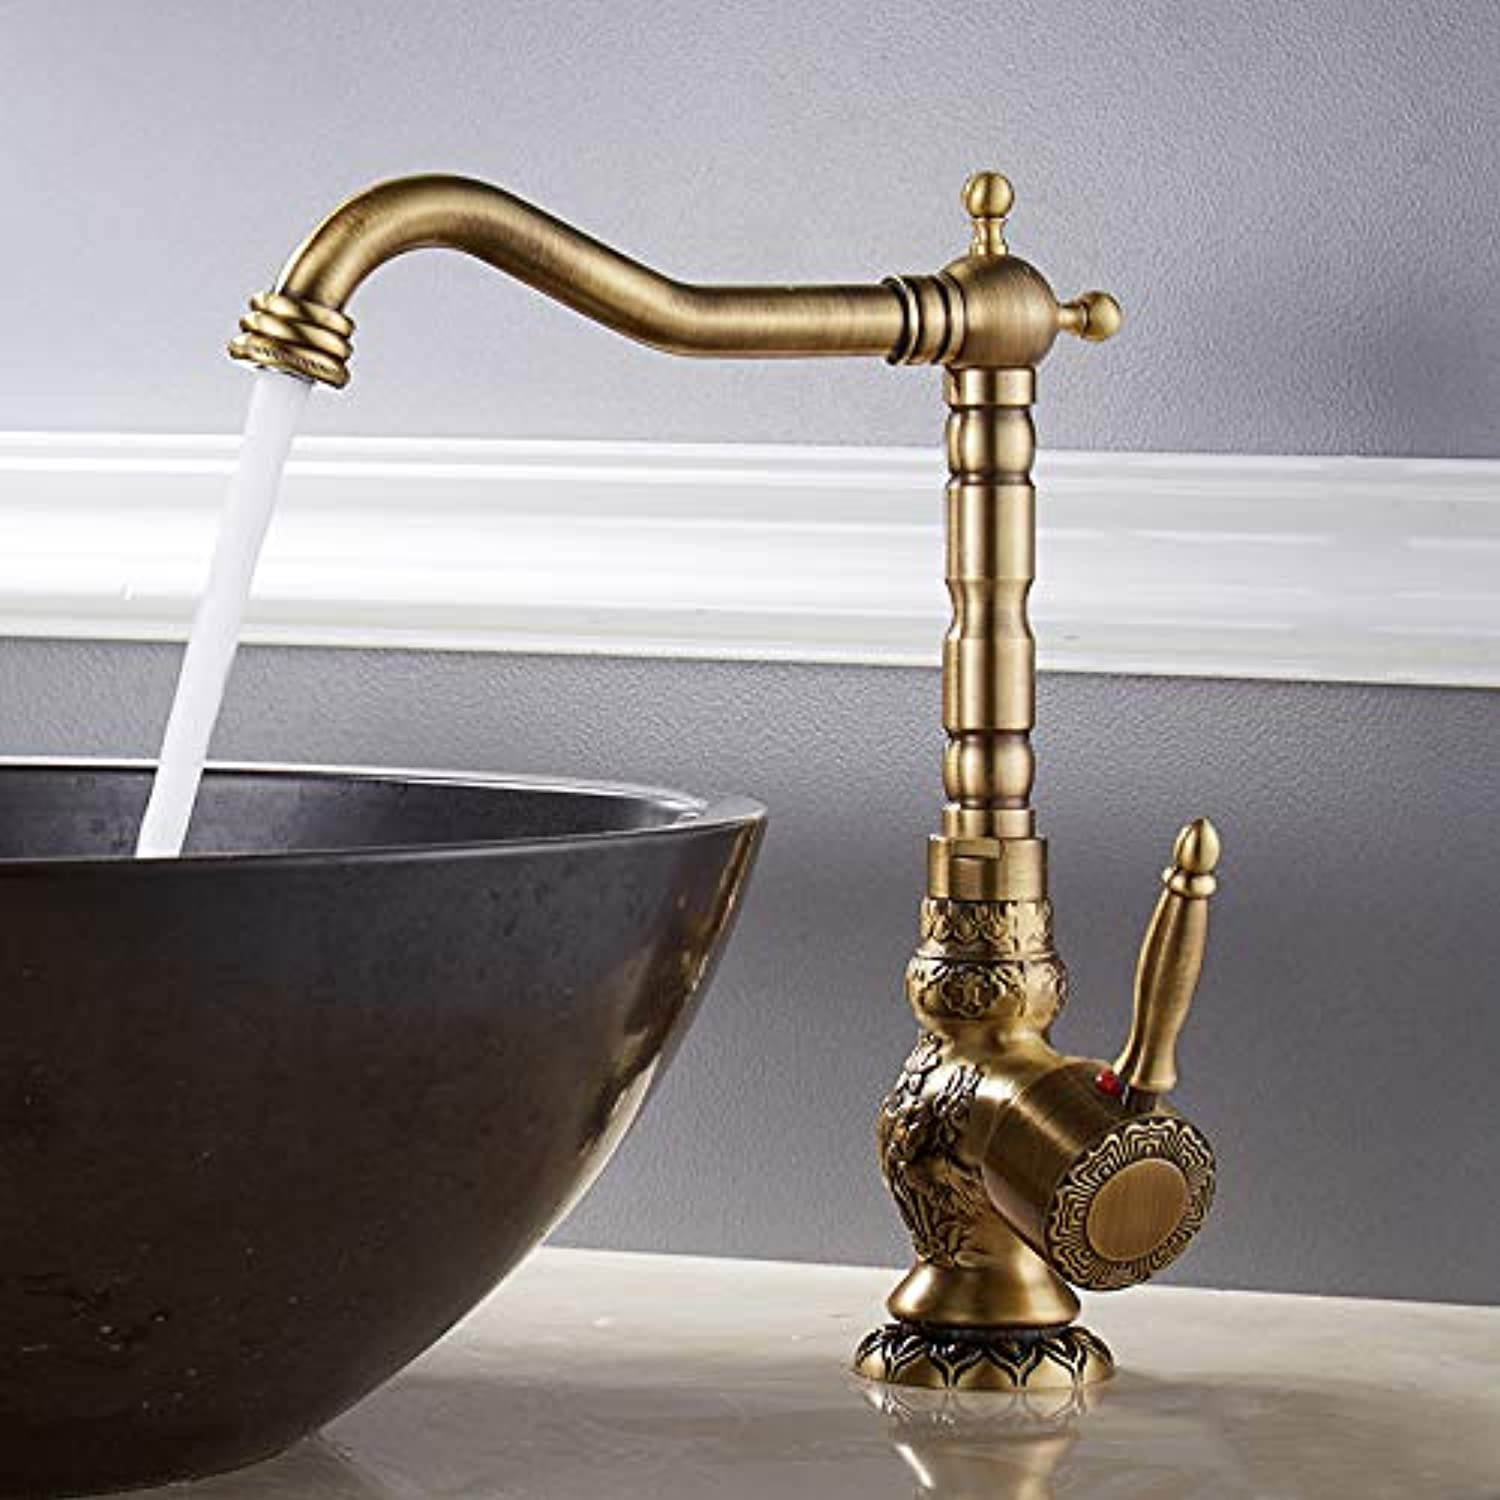 Basin Faucet Sink Faucet European Style All Copper Carved Antique Basin Head Art Basin, Retro Single Hole Hot and Cold Water Faucet,B